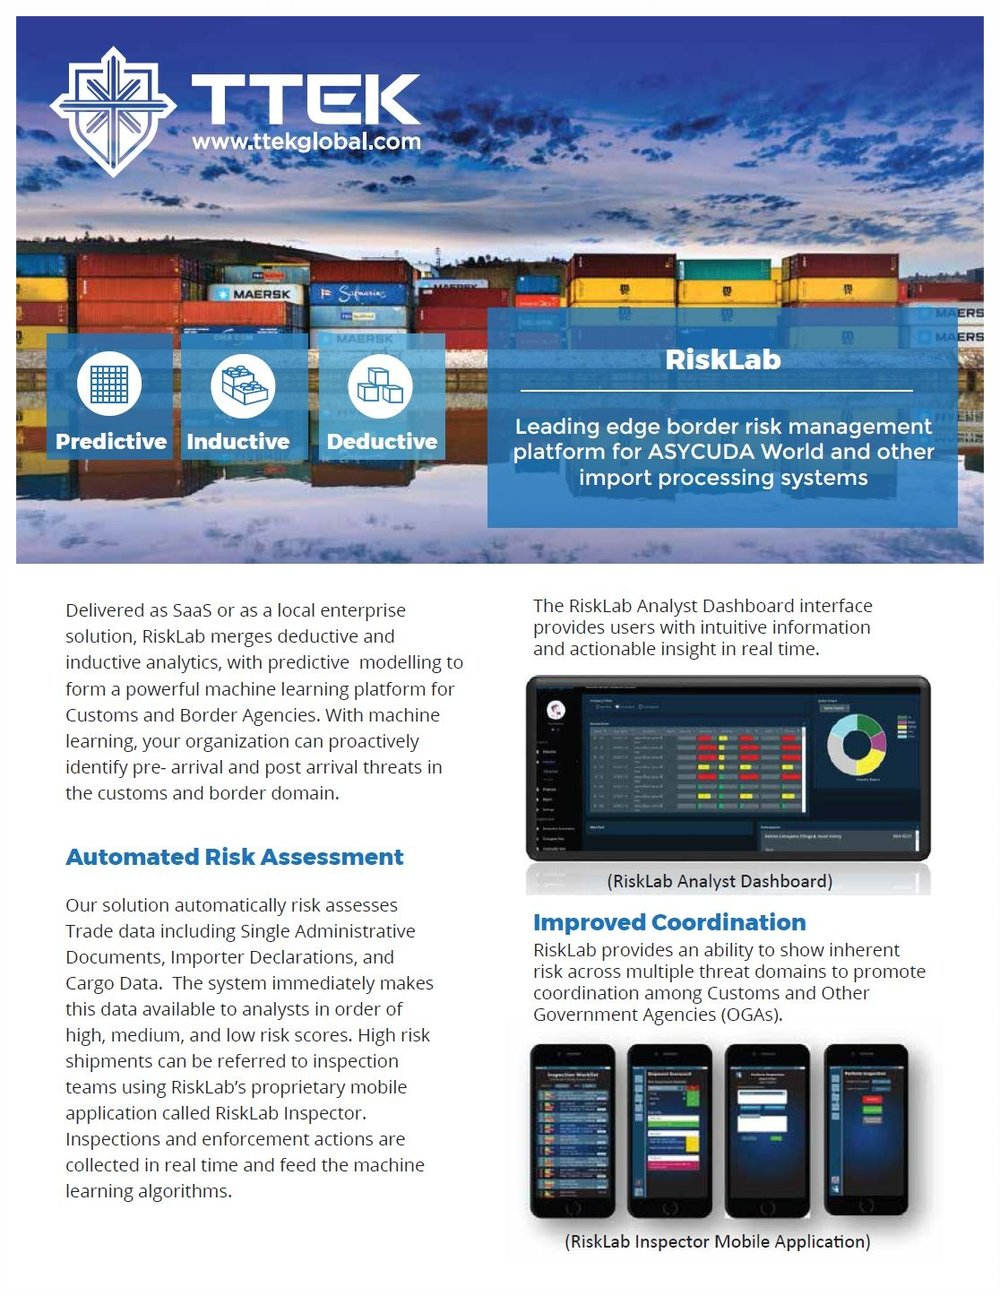 Download Our RiskLab Brochure in PDF Format